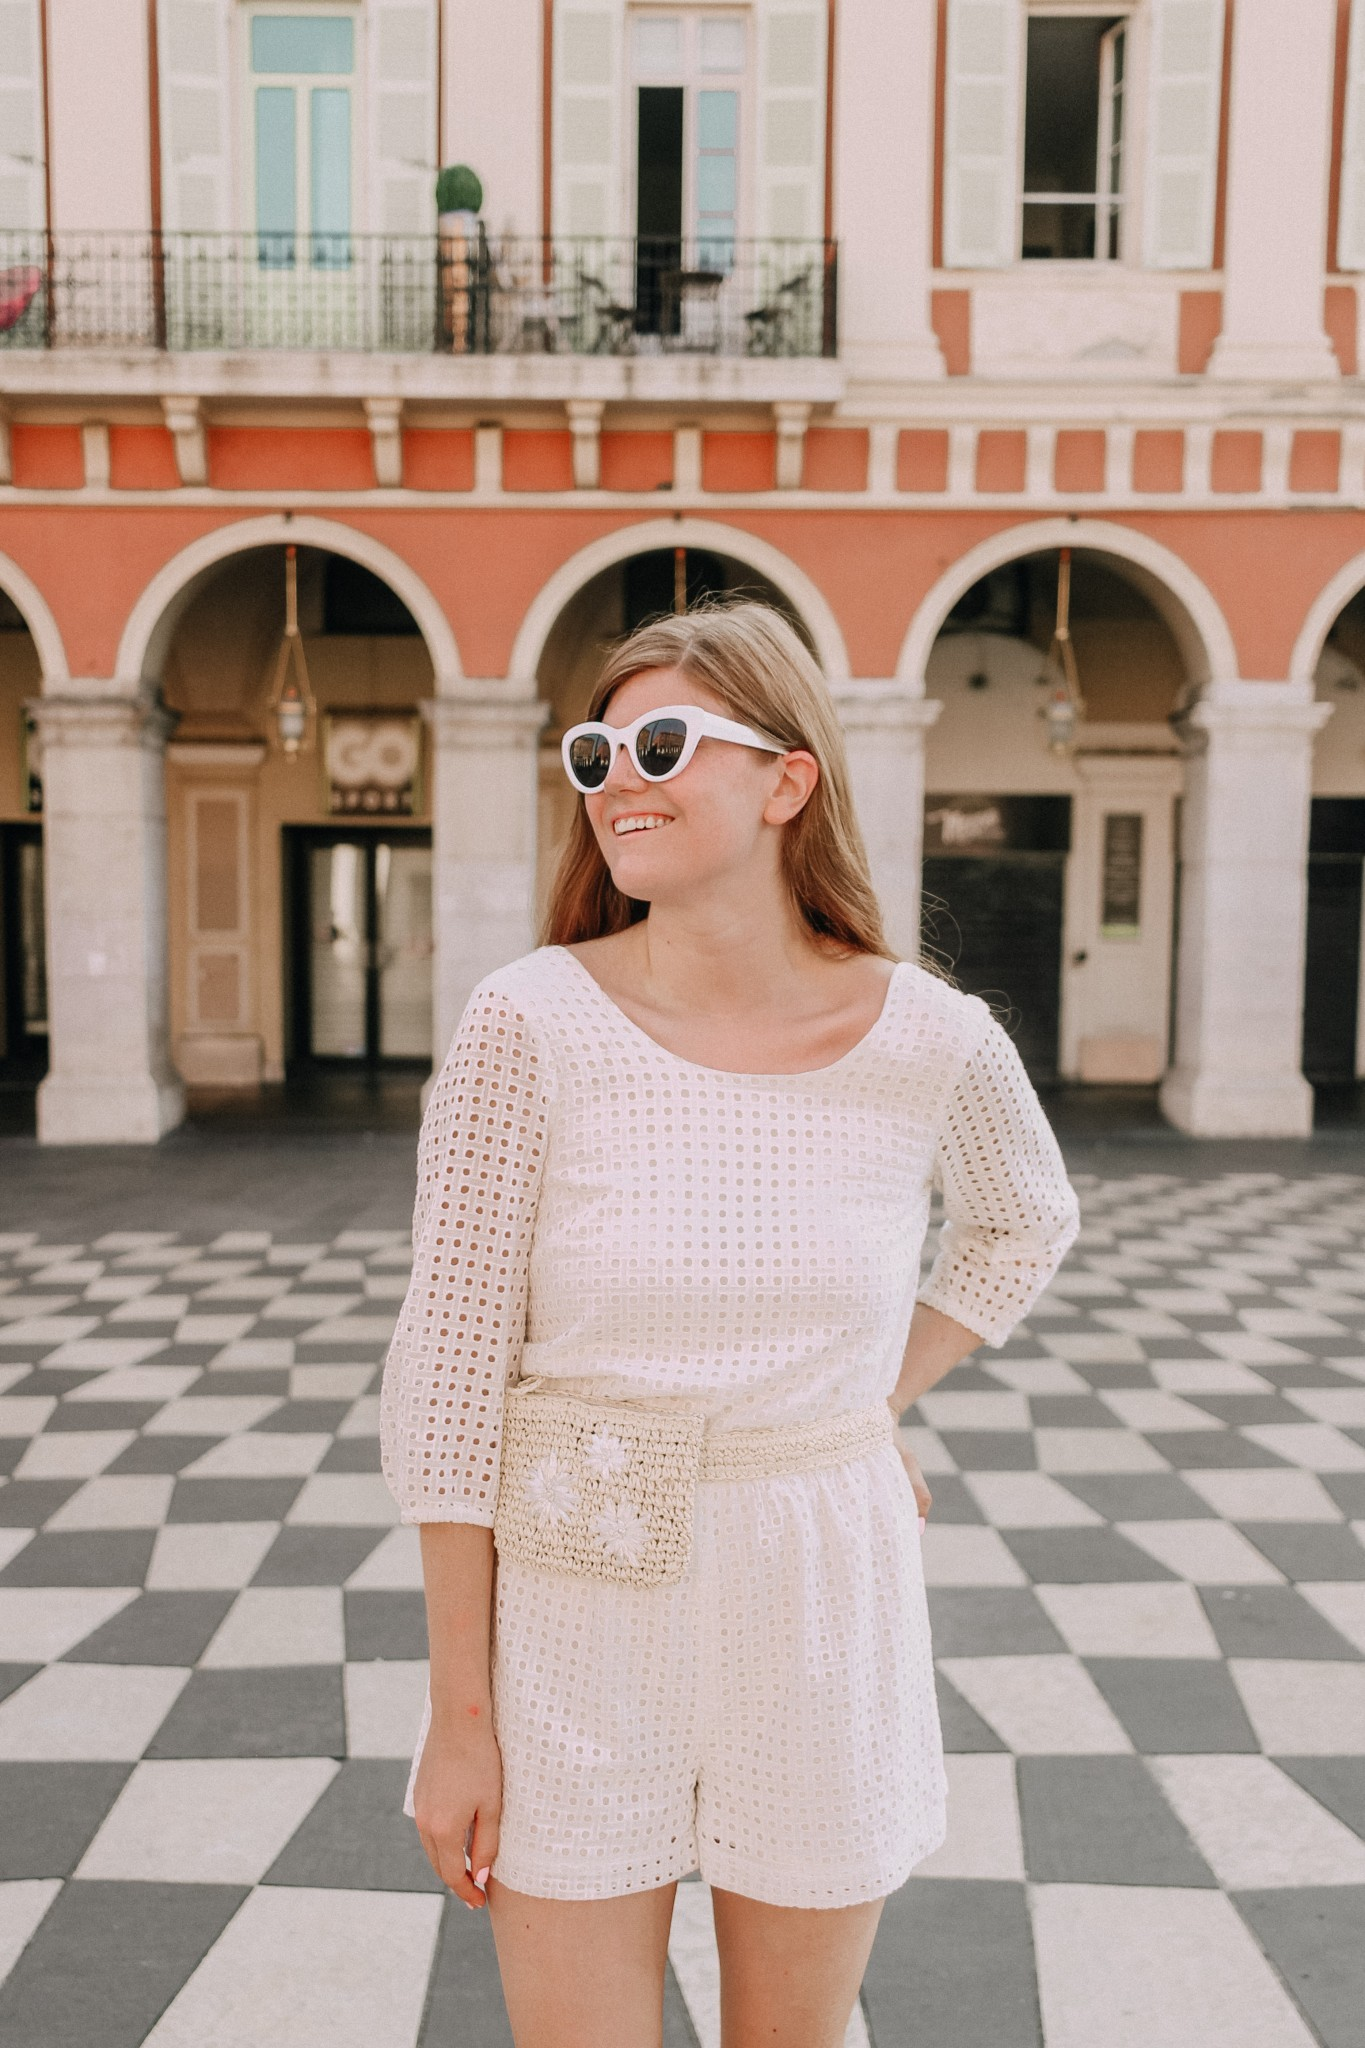 http://bit.ly/2NGOE12 | Popular London lifestyle blogger Mollie Moore shares photos from Place Massena Nice